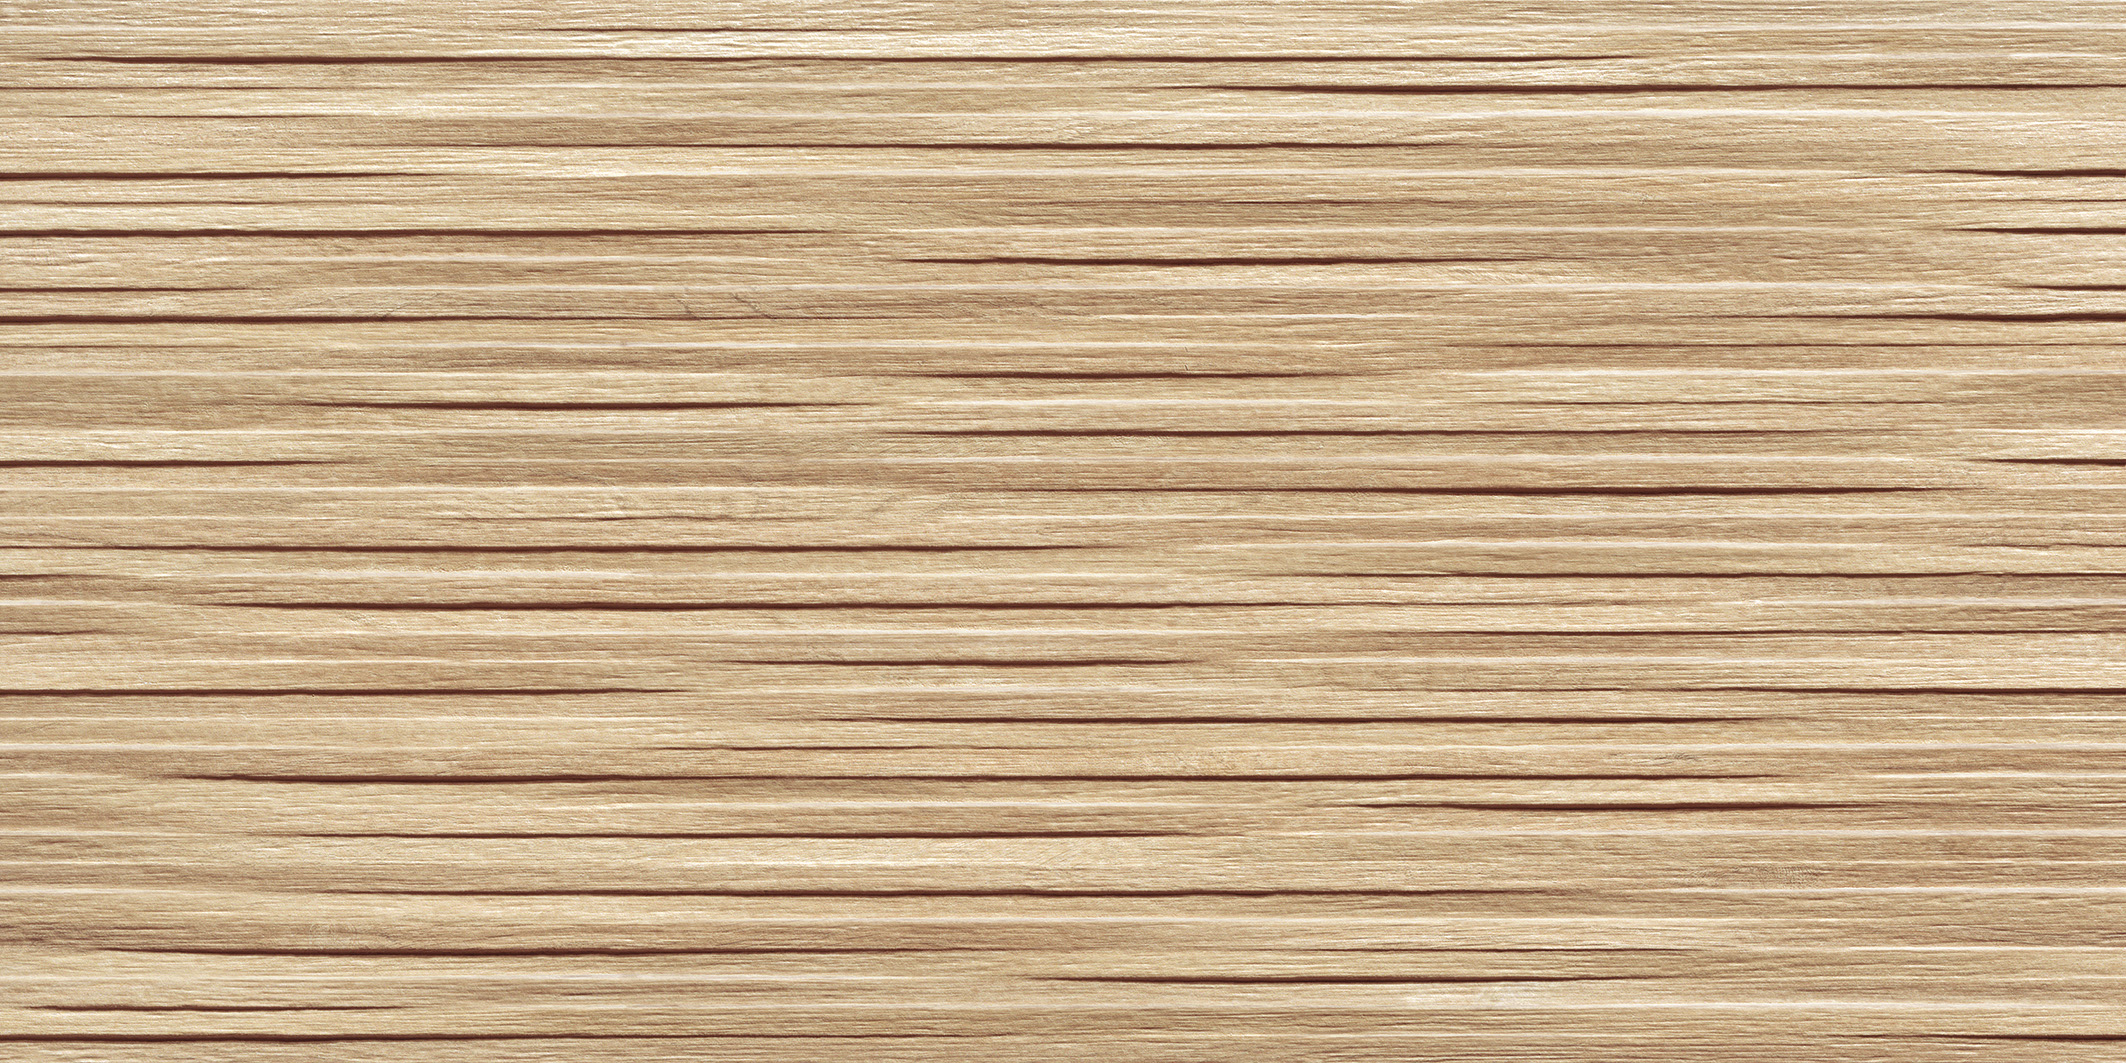 AtlasConcorde_NID_Light-Cashmere_3D_Wooden_Mix_40x80_8NWL